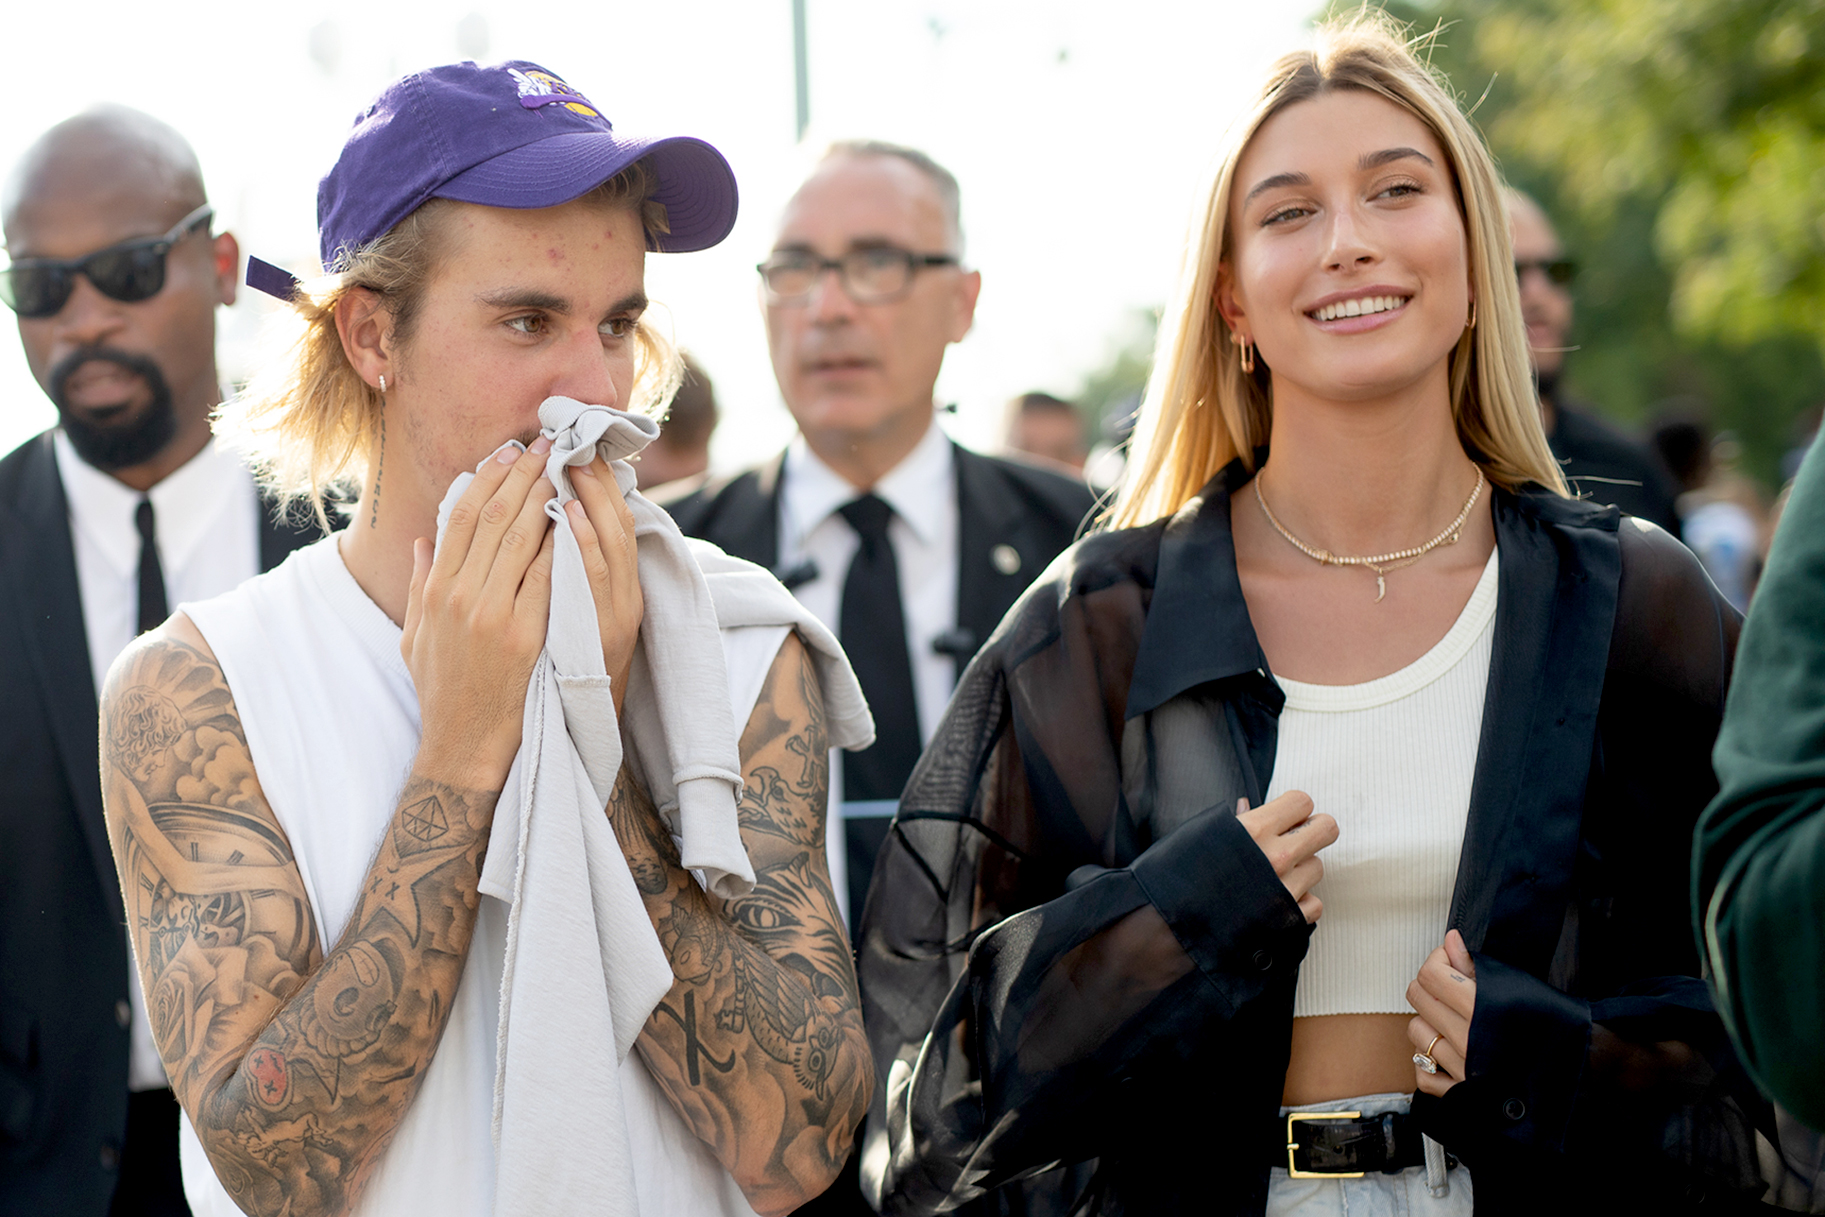 Justin Bieber s Model Ex-Girlfriends Where Are They Now